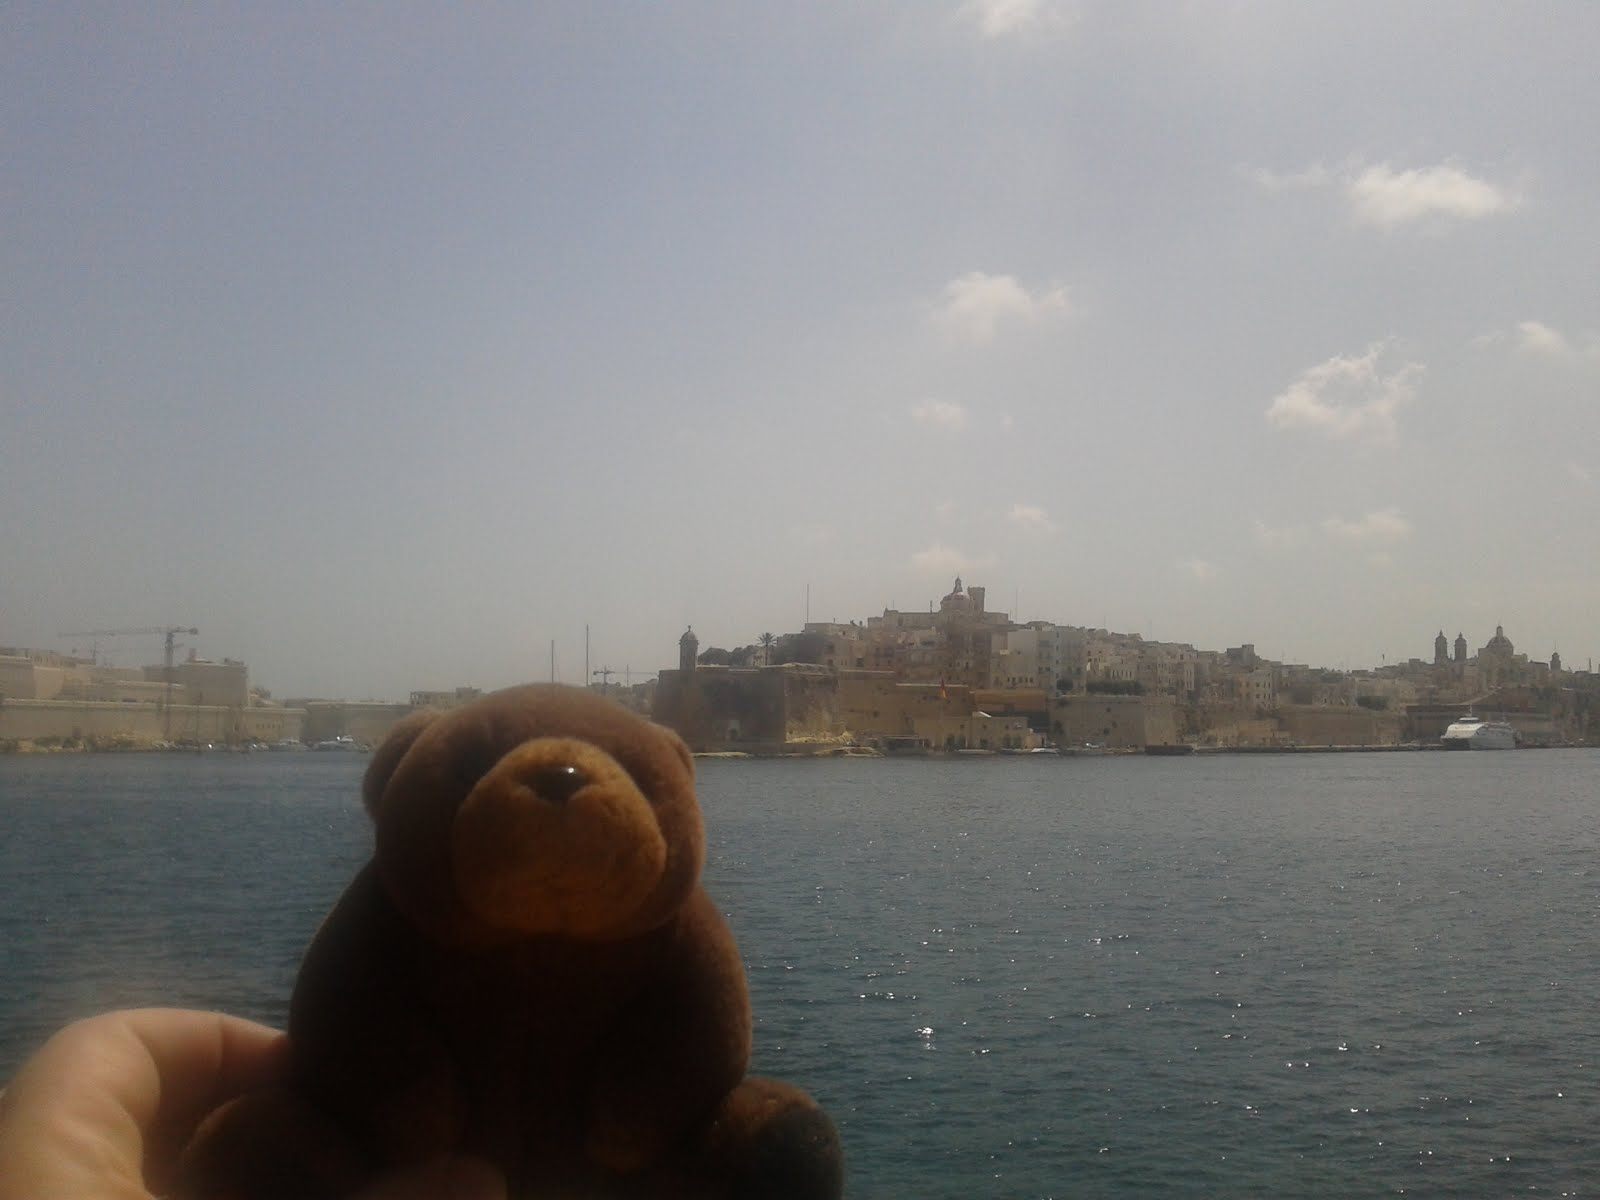 Teddy Bear in Malta